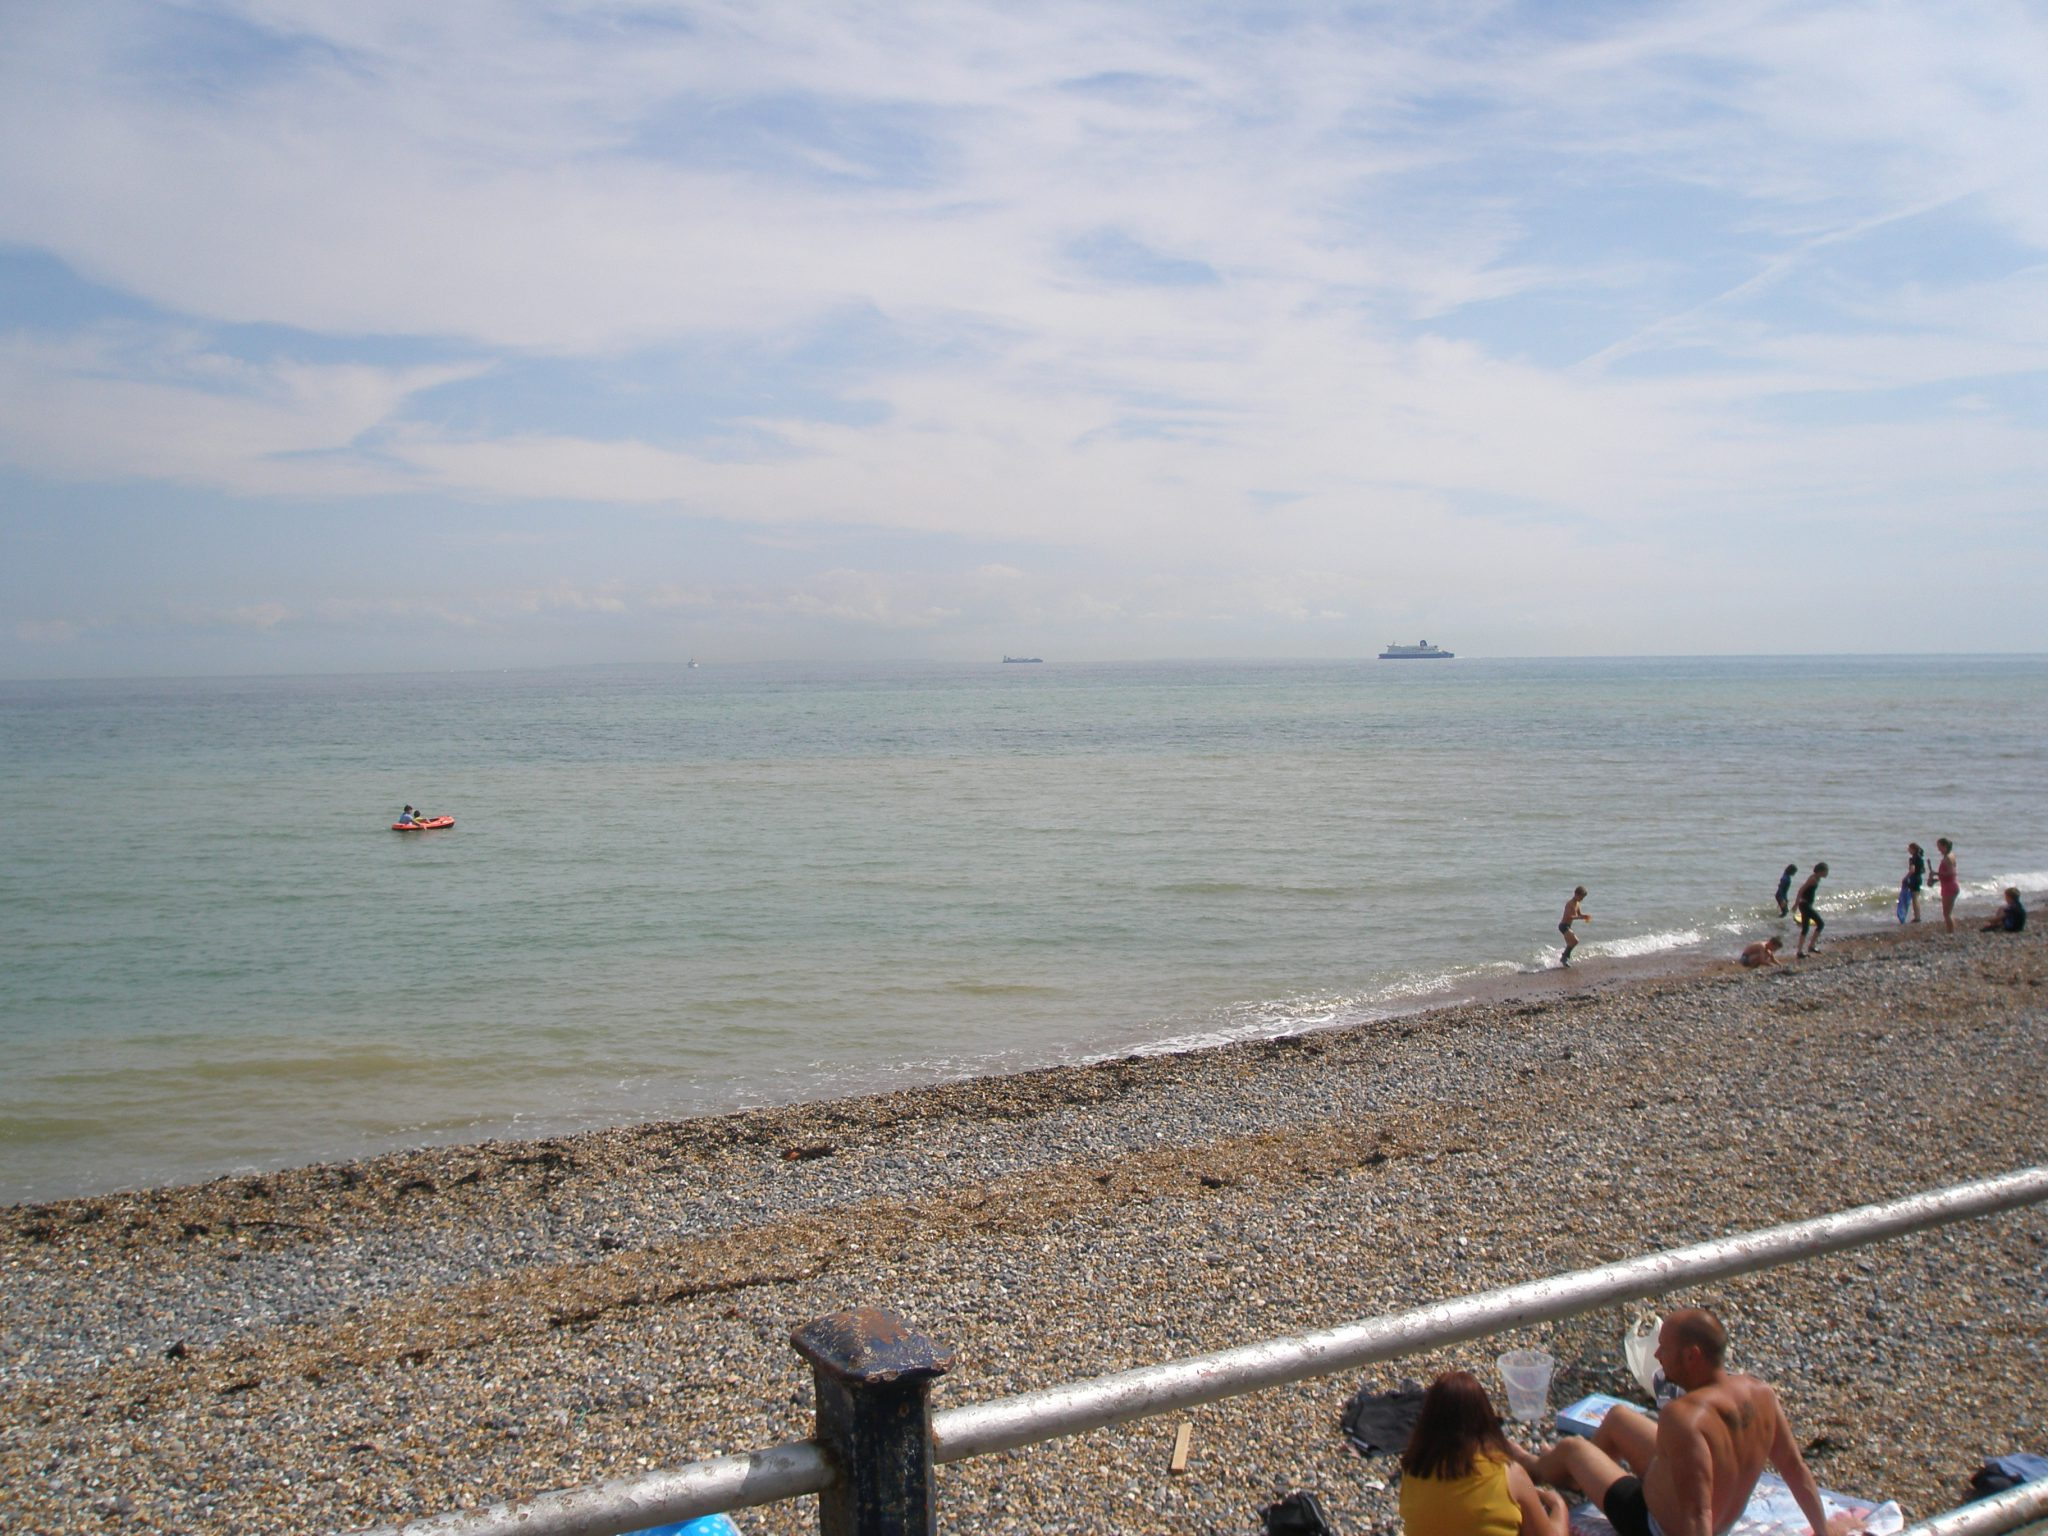 Beach-goers lounge on the rough, single beach, while an endless armada of ships passes, on the English Channel. On the far horizon, France can be seen, as a thin smudge of darker blue.